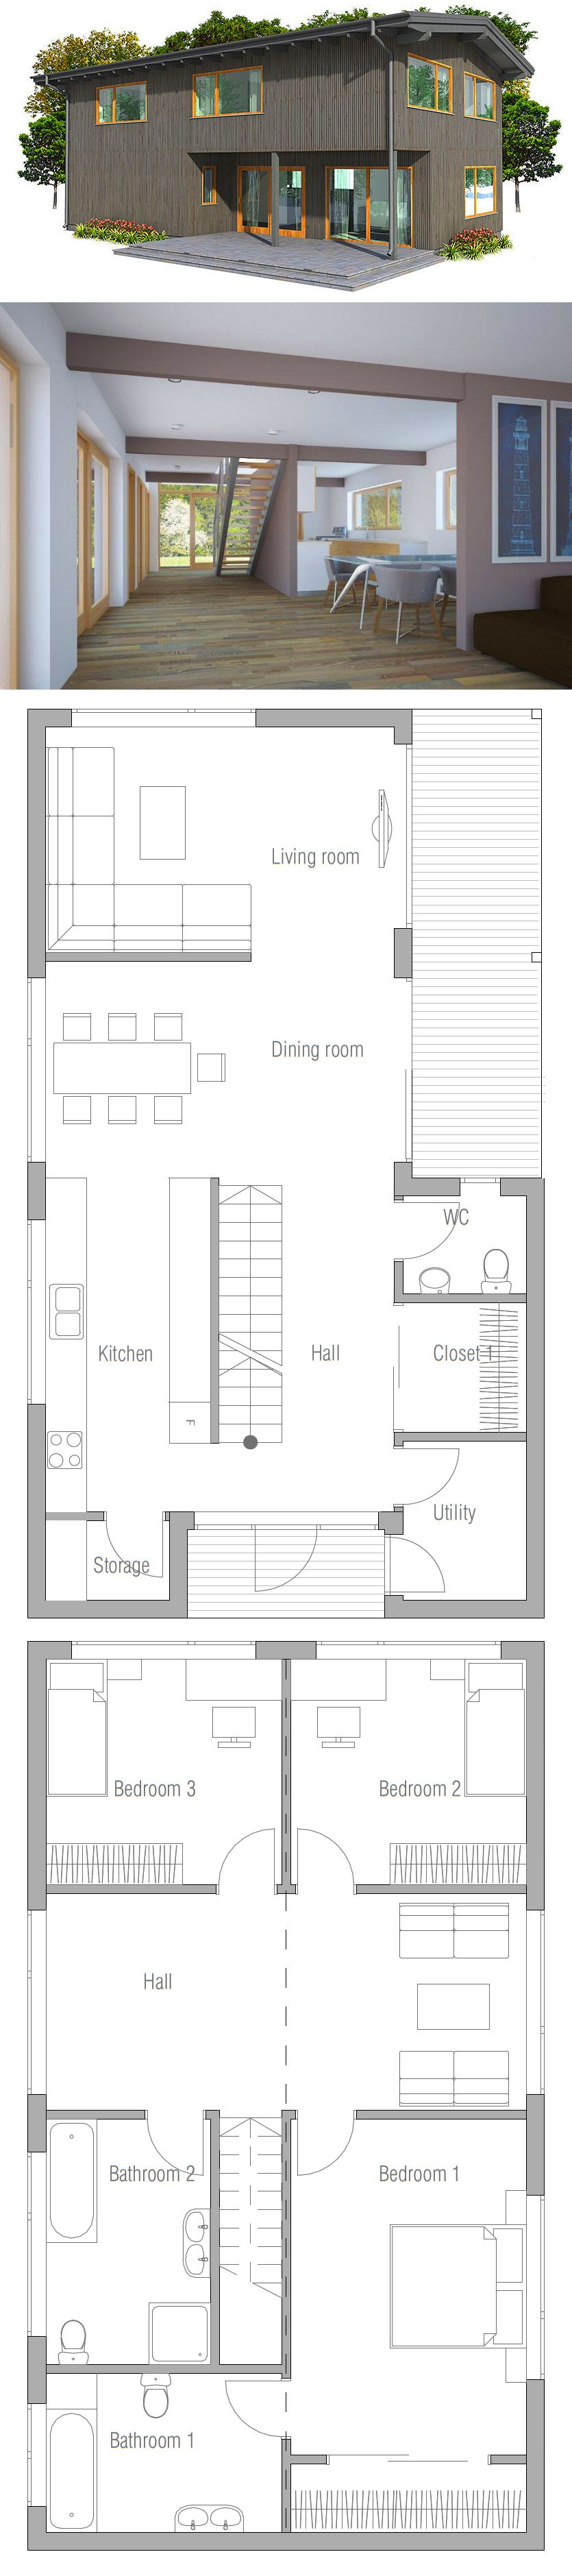 Small house plan small house plans pinterest haus for Haus bauen plan